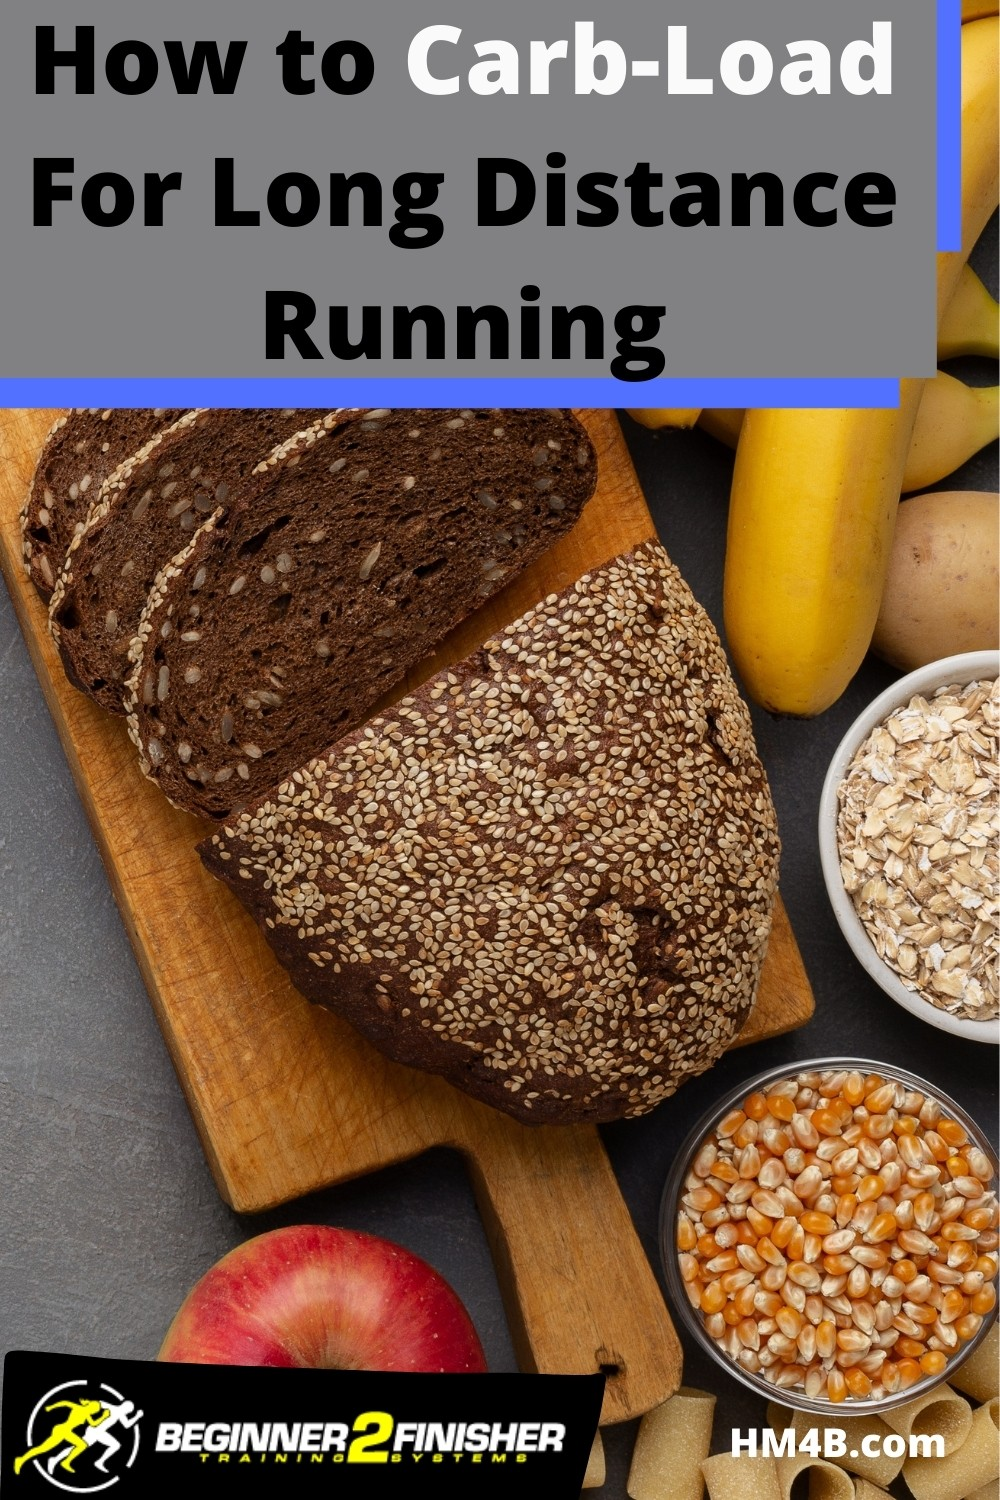 What is Carb Loading? Why Do Long Distance Runners do this?